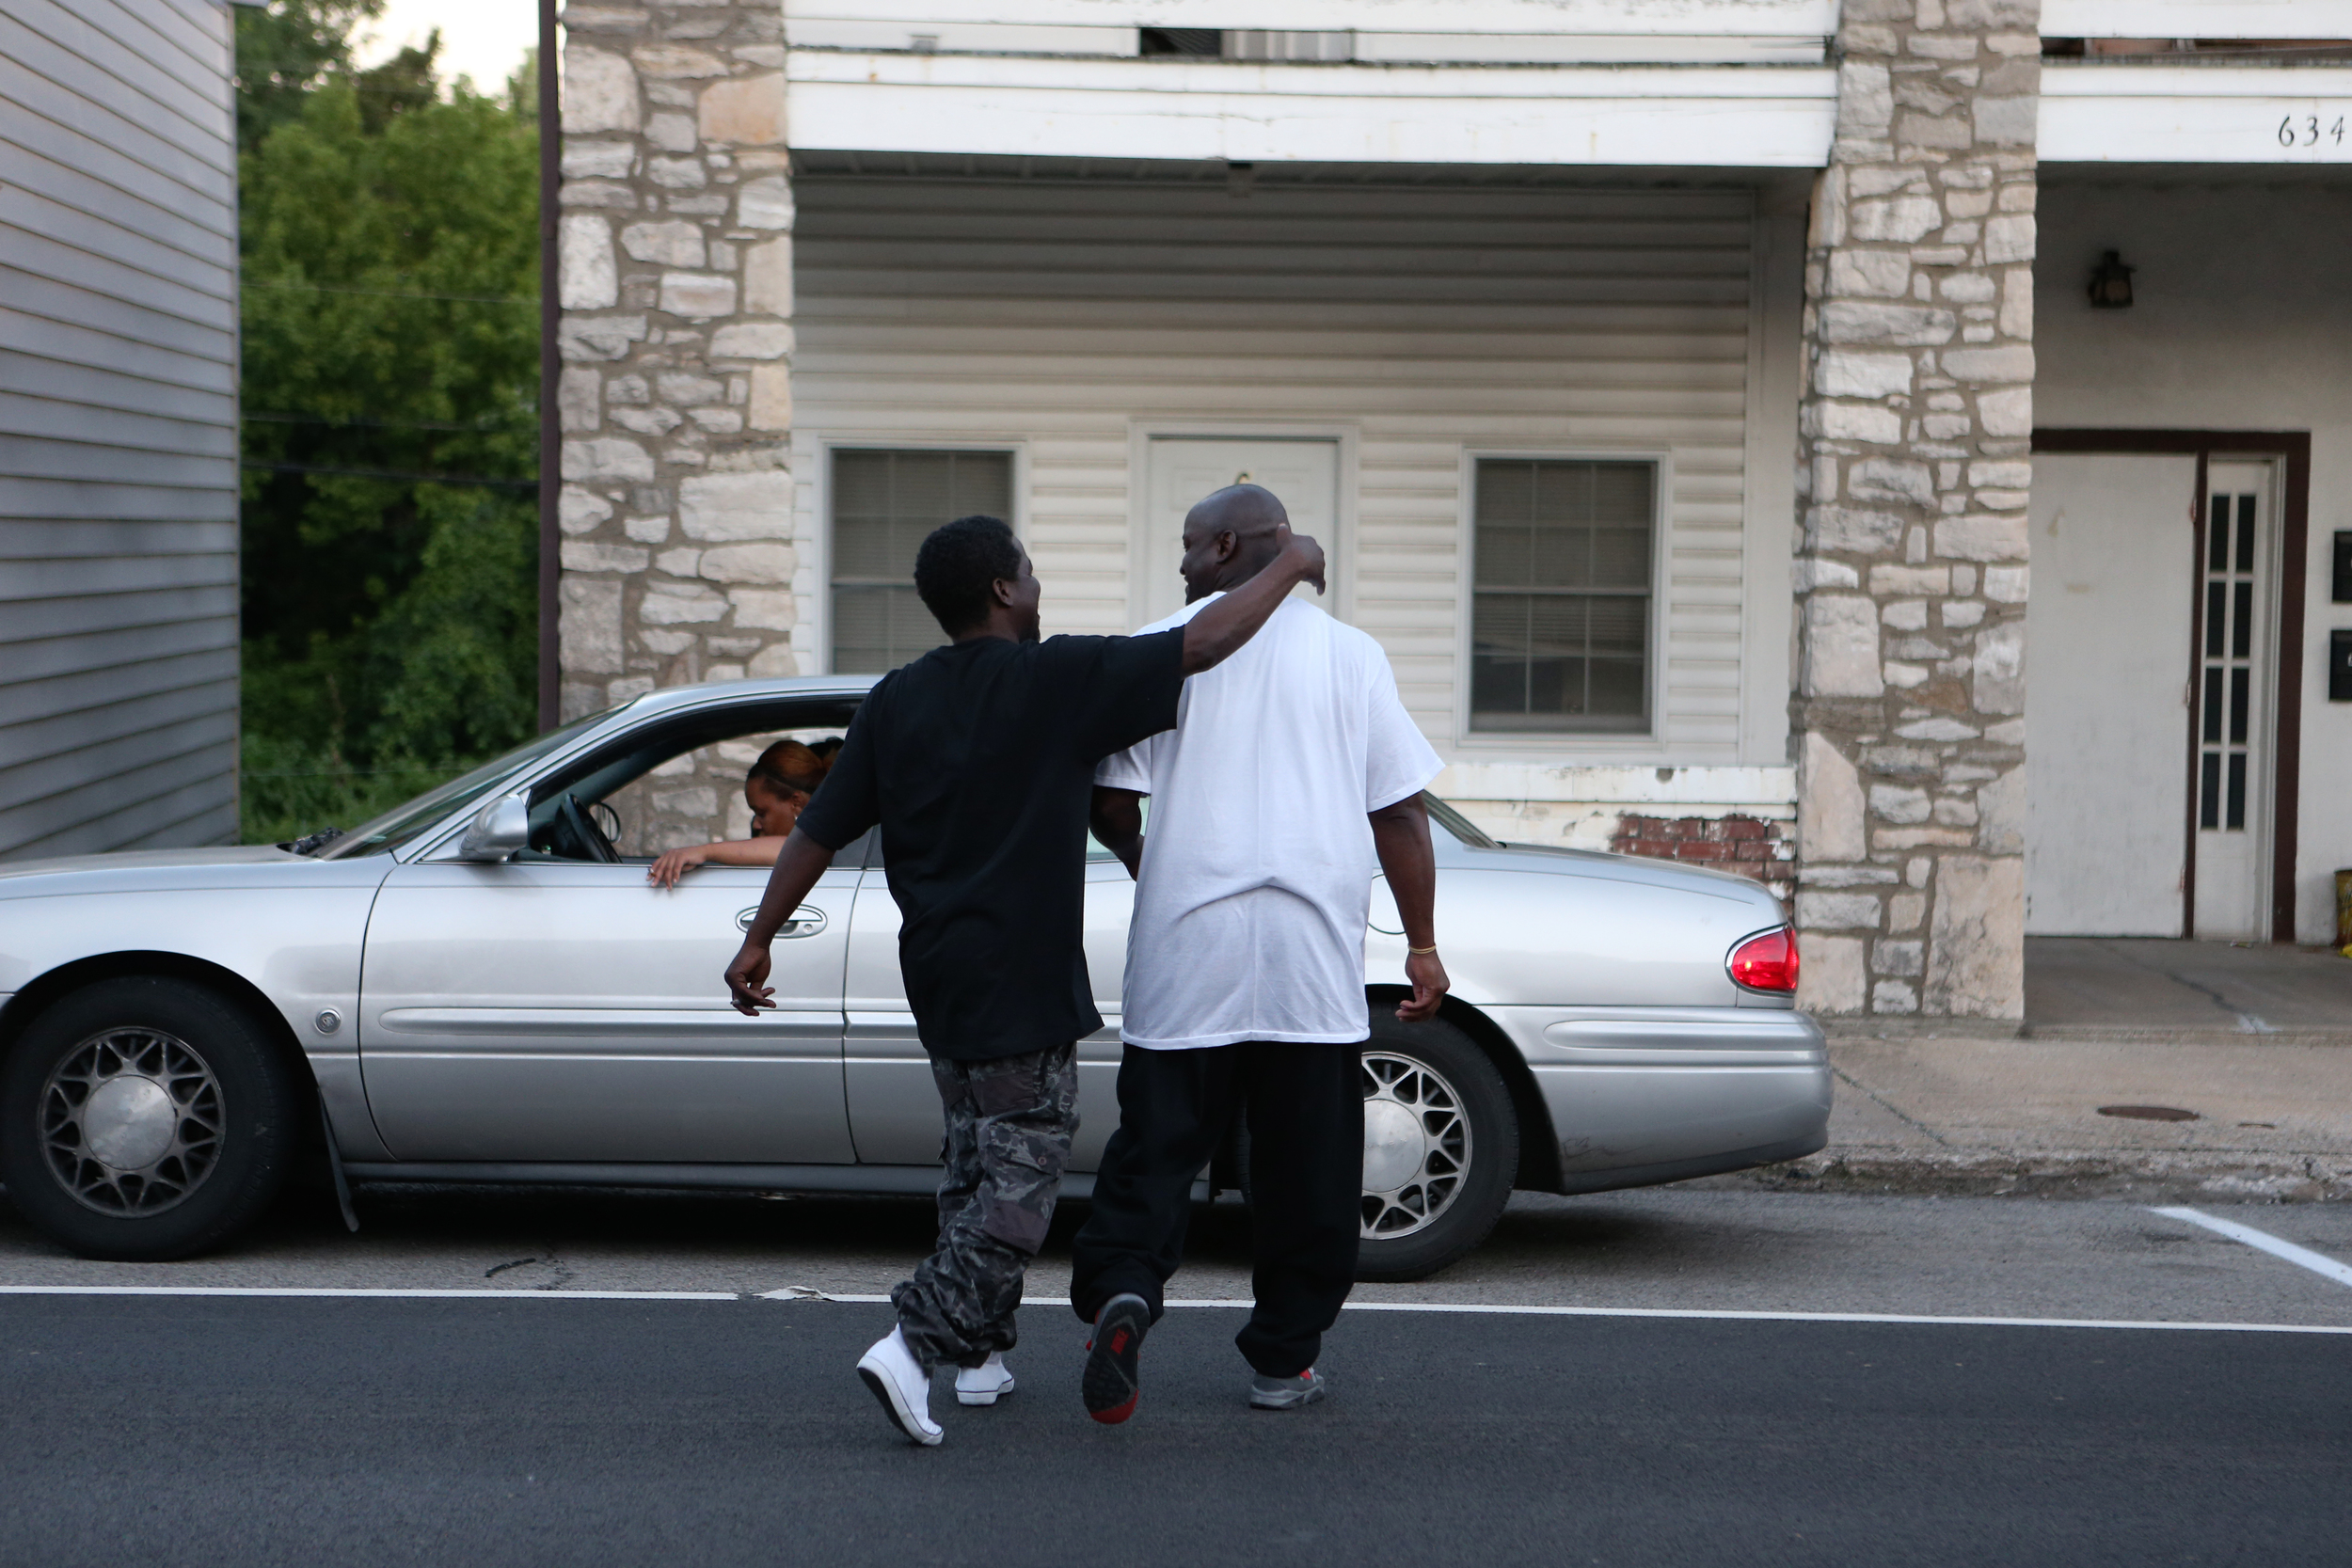 Just hours after his release, Daniel walks with his brother, David, out of Jodie's Ol' Farmhouse Cafe & Bakery in Mernard, Ill. on Friday June 28, 2013. They were heading home to David's house in Chicago, where Daniel will live until he gets his own place.